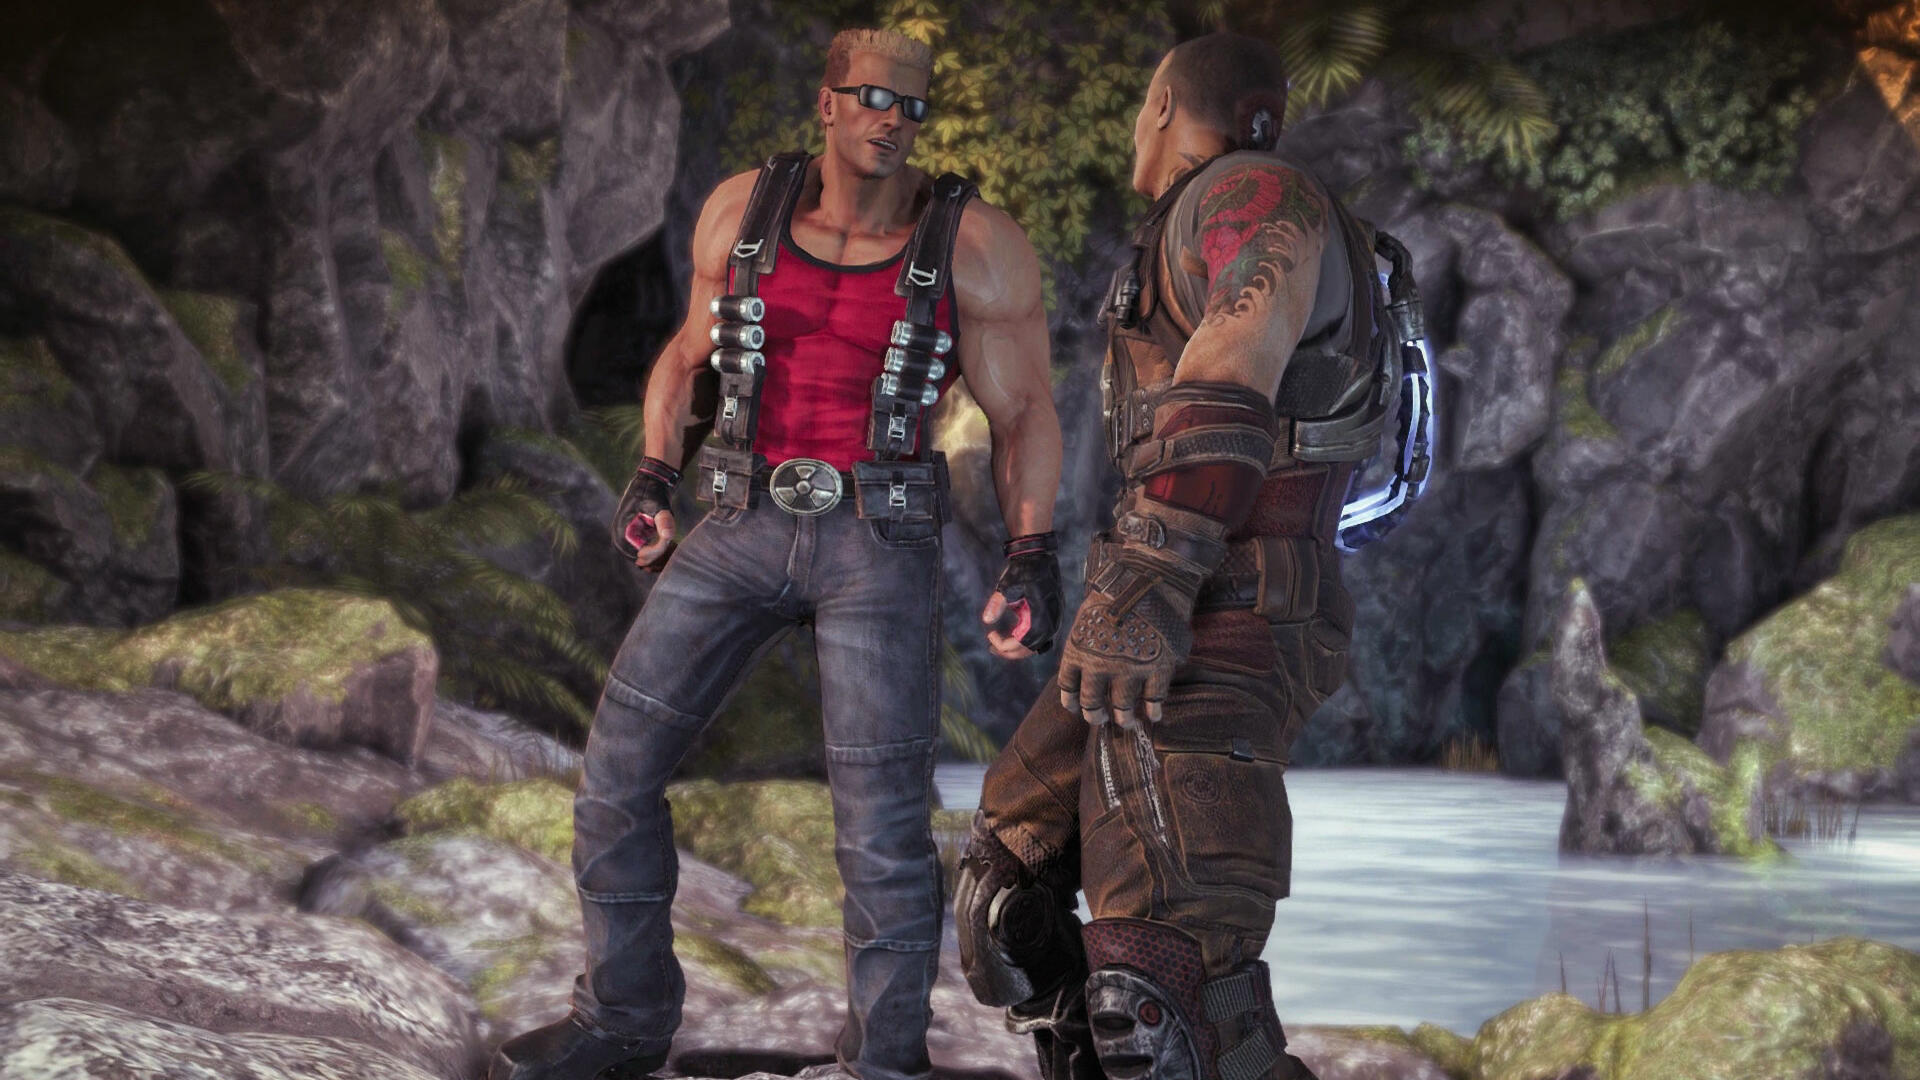 Bulletstorm: Duke of Switch Brings Crazy Shooter to Switch With All of Its DLC, Including Duke Nukem